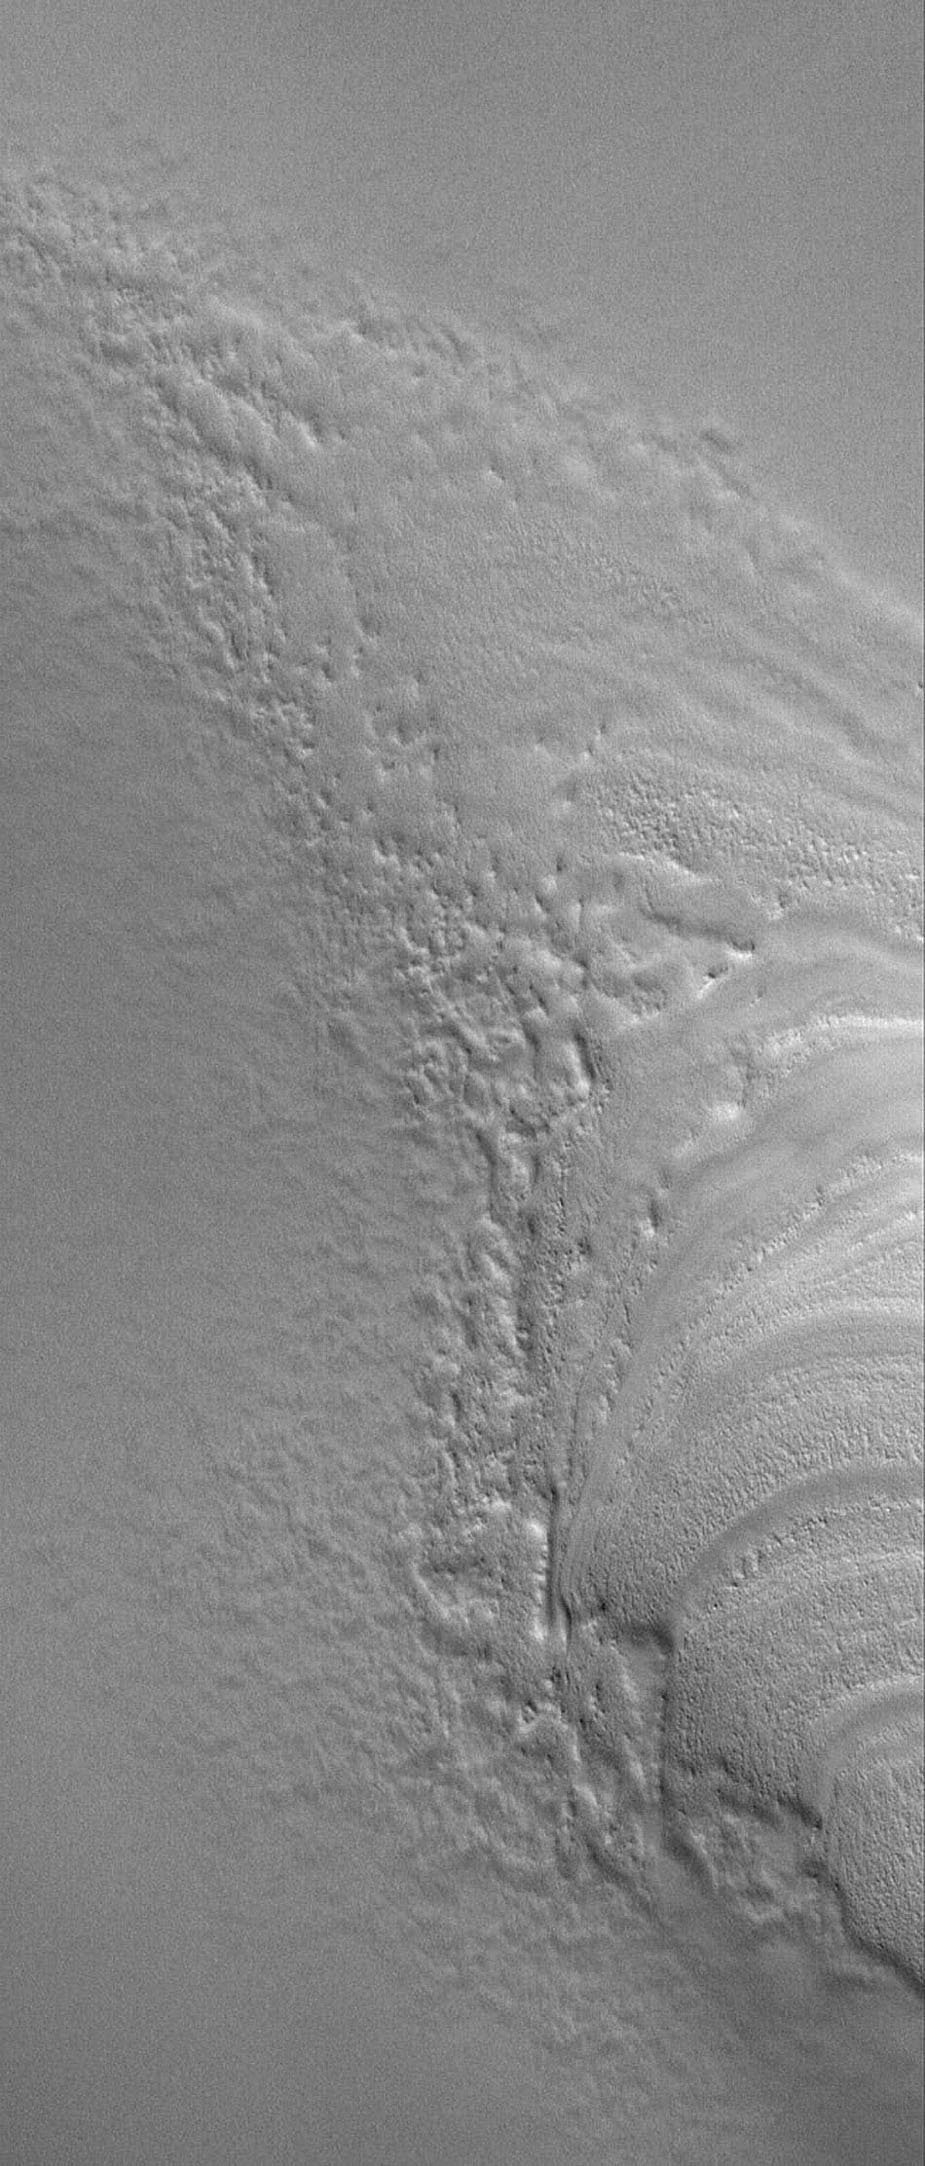 This image from NASA's Mars Global Surveyor shows the termination (end) of a group of layers in the north polar region of Mars, where they have been buried by younger, smoother-surfaced material.